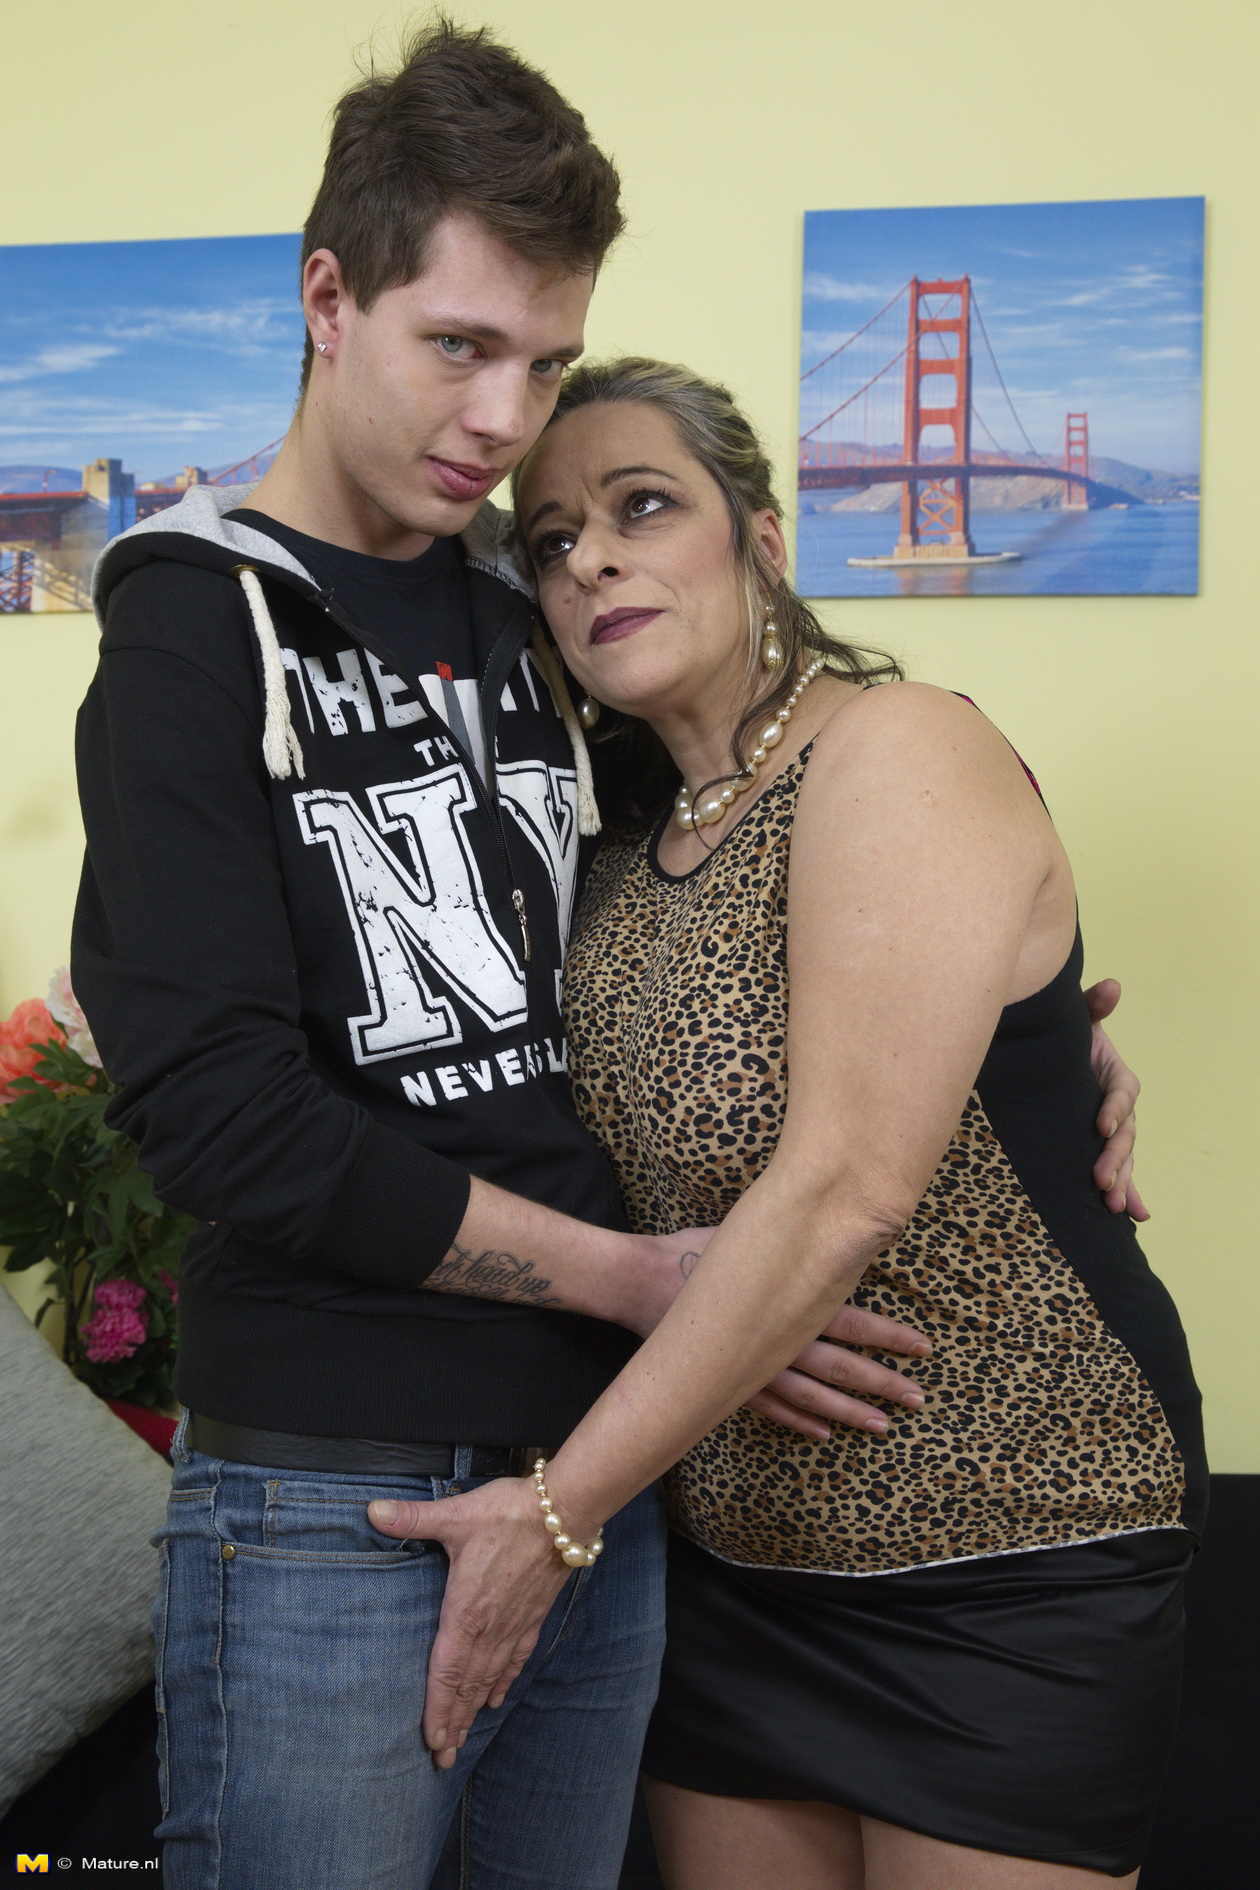 Grandmom loves it doggystyle – 18 years old guys is taking oma from behind without using condom